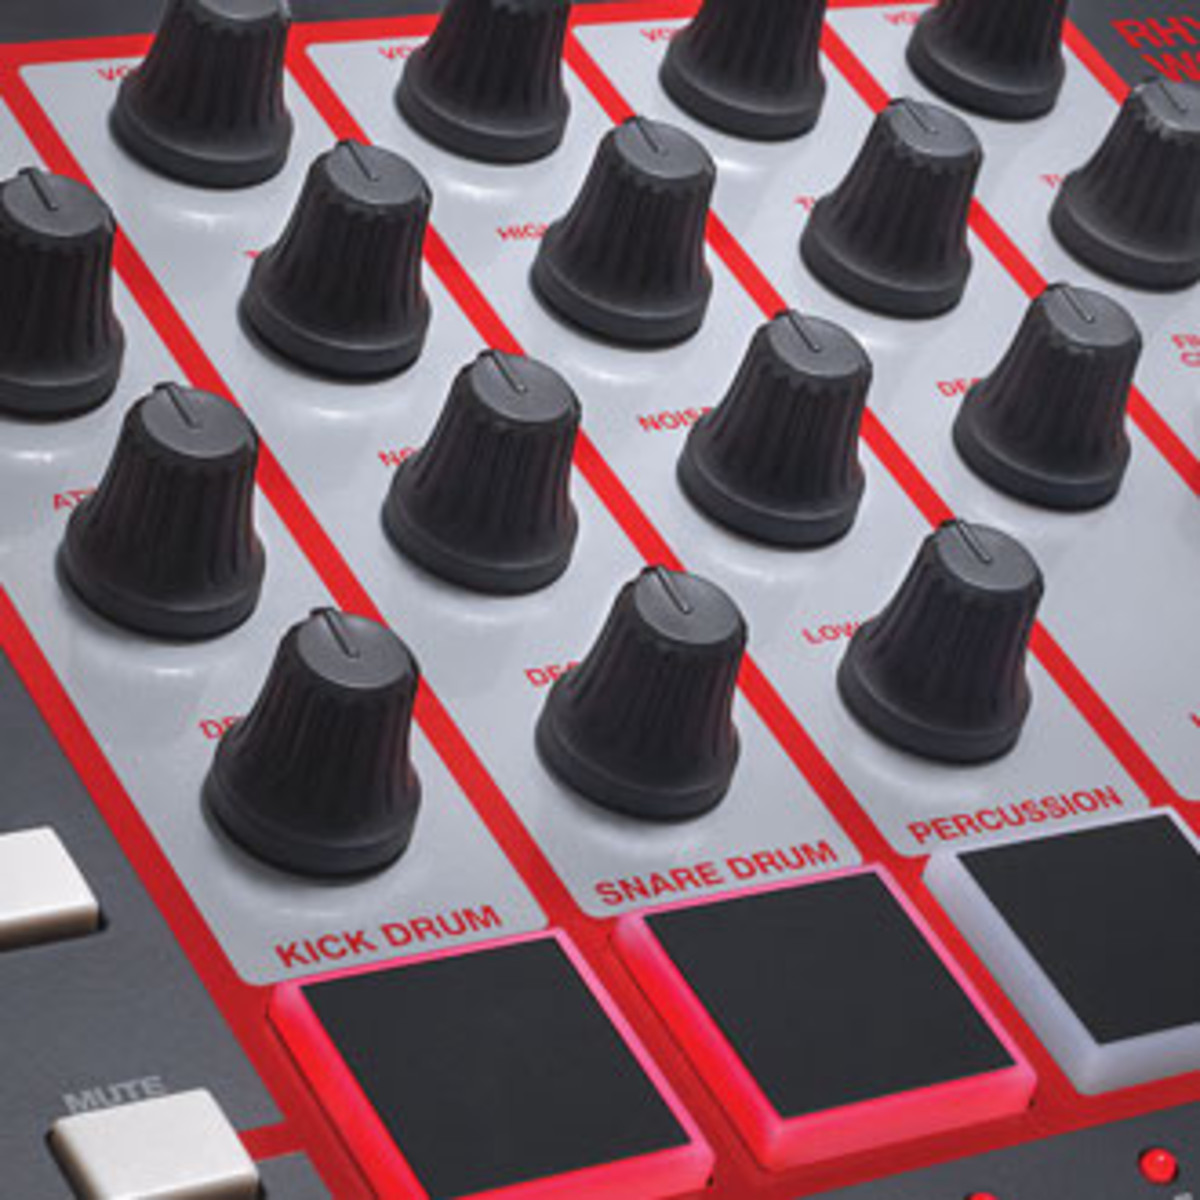 synth and drum machine